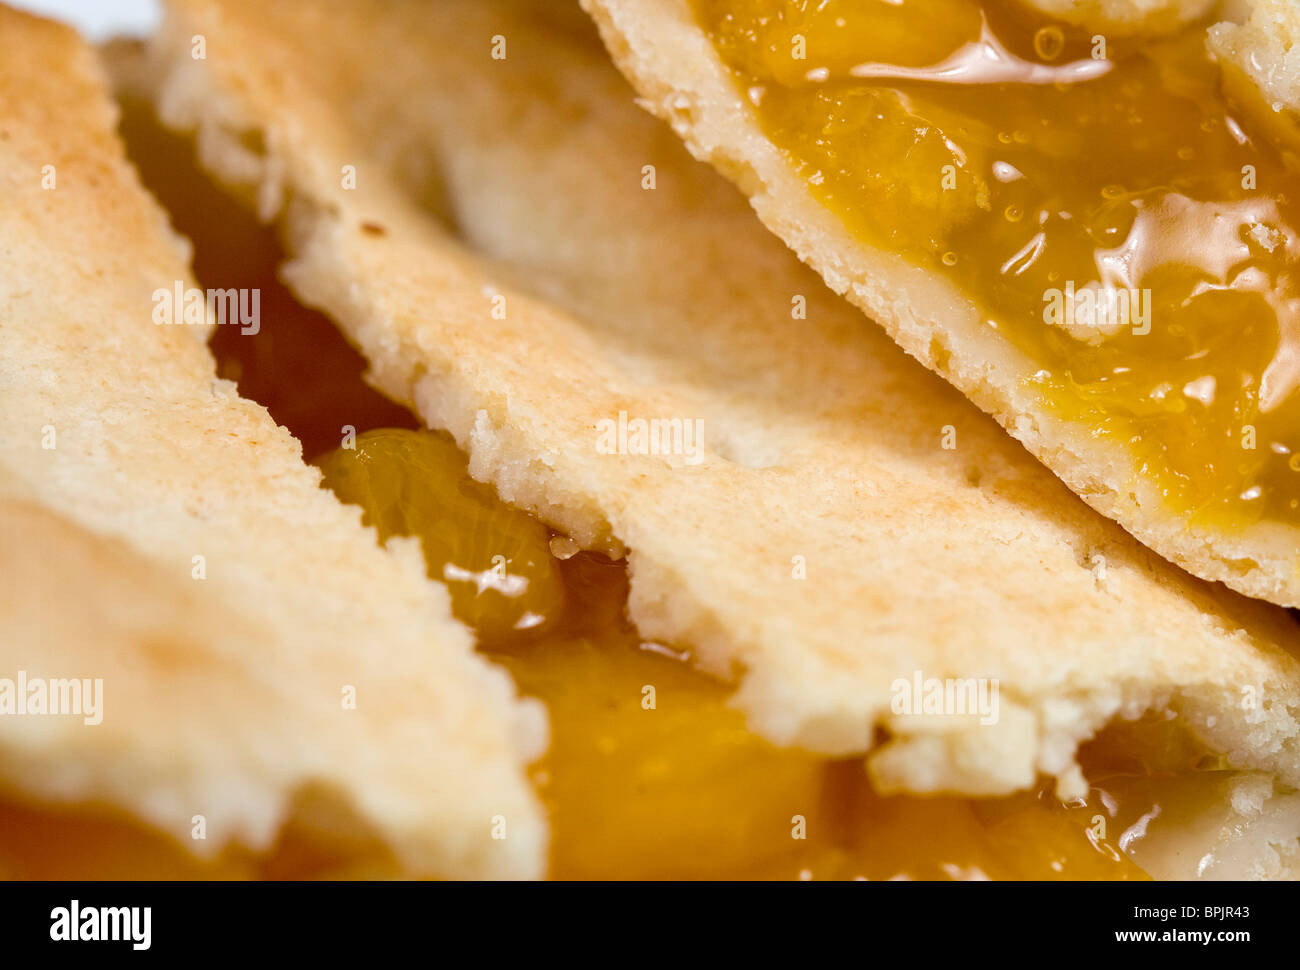 Tastykake Peach fruit pie. - Stock Image